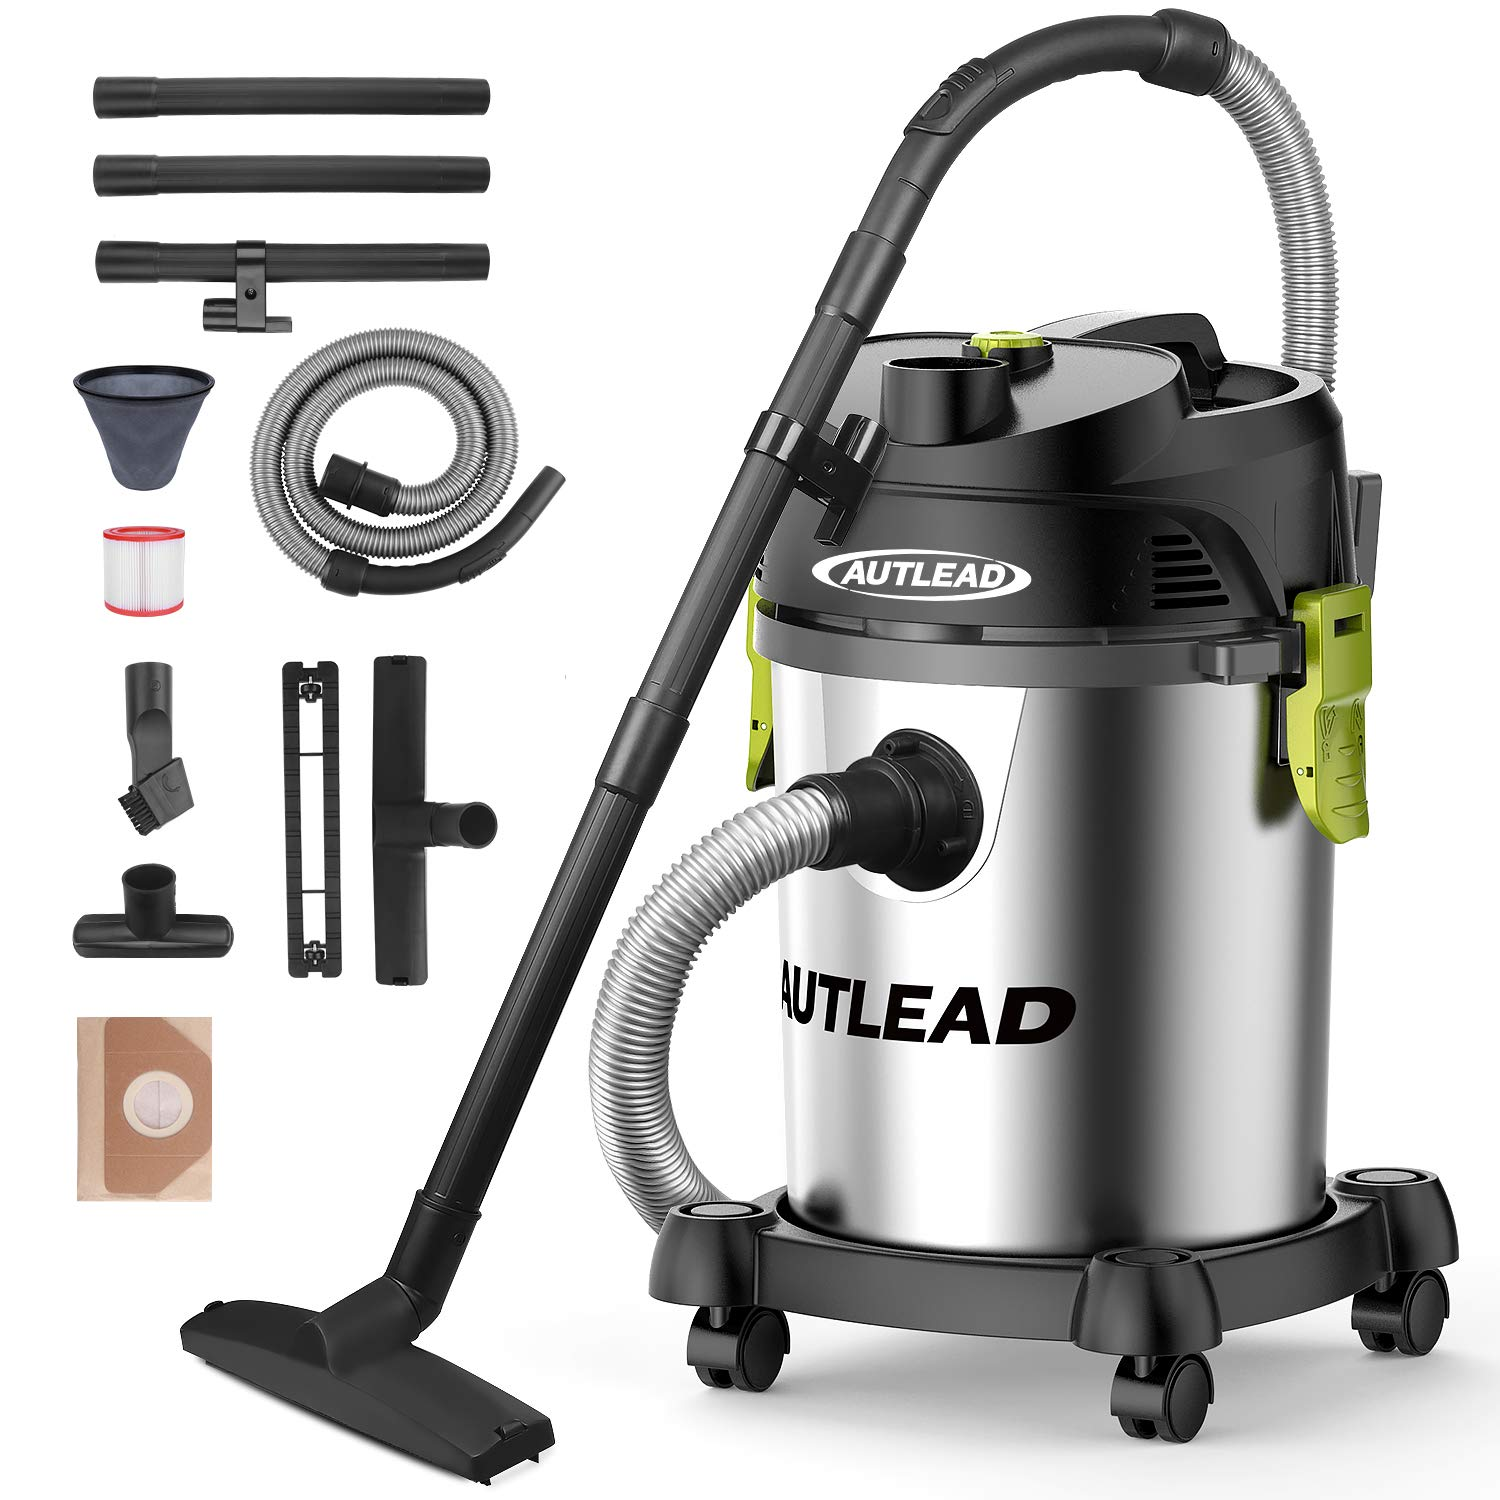 AUTLEAD Vacuum WDS03A 5 Gallon 1200W Pure Copper Motor 5.5 HP Wet/Dry/Blow 3 in 1 Shop Vac, Stable Round Bucket Design with Pulley System, HEPA Disposable Bag, 3 Brush Included, 5.5 gal, Black